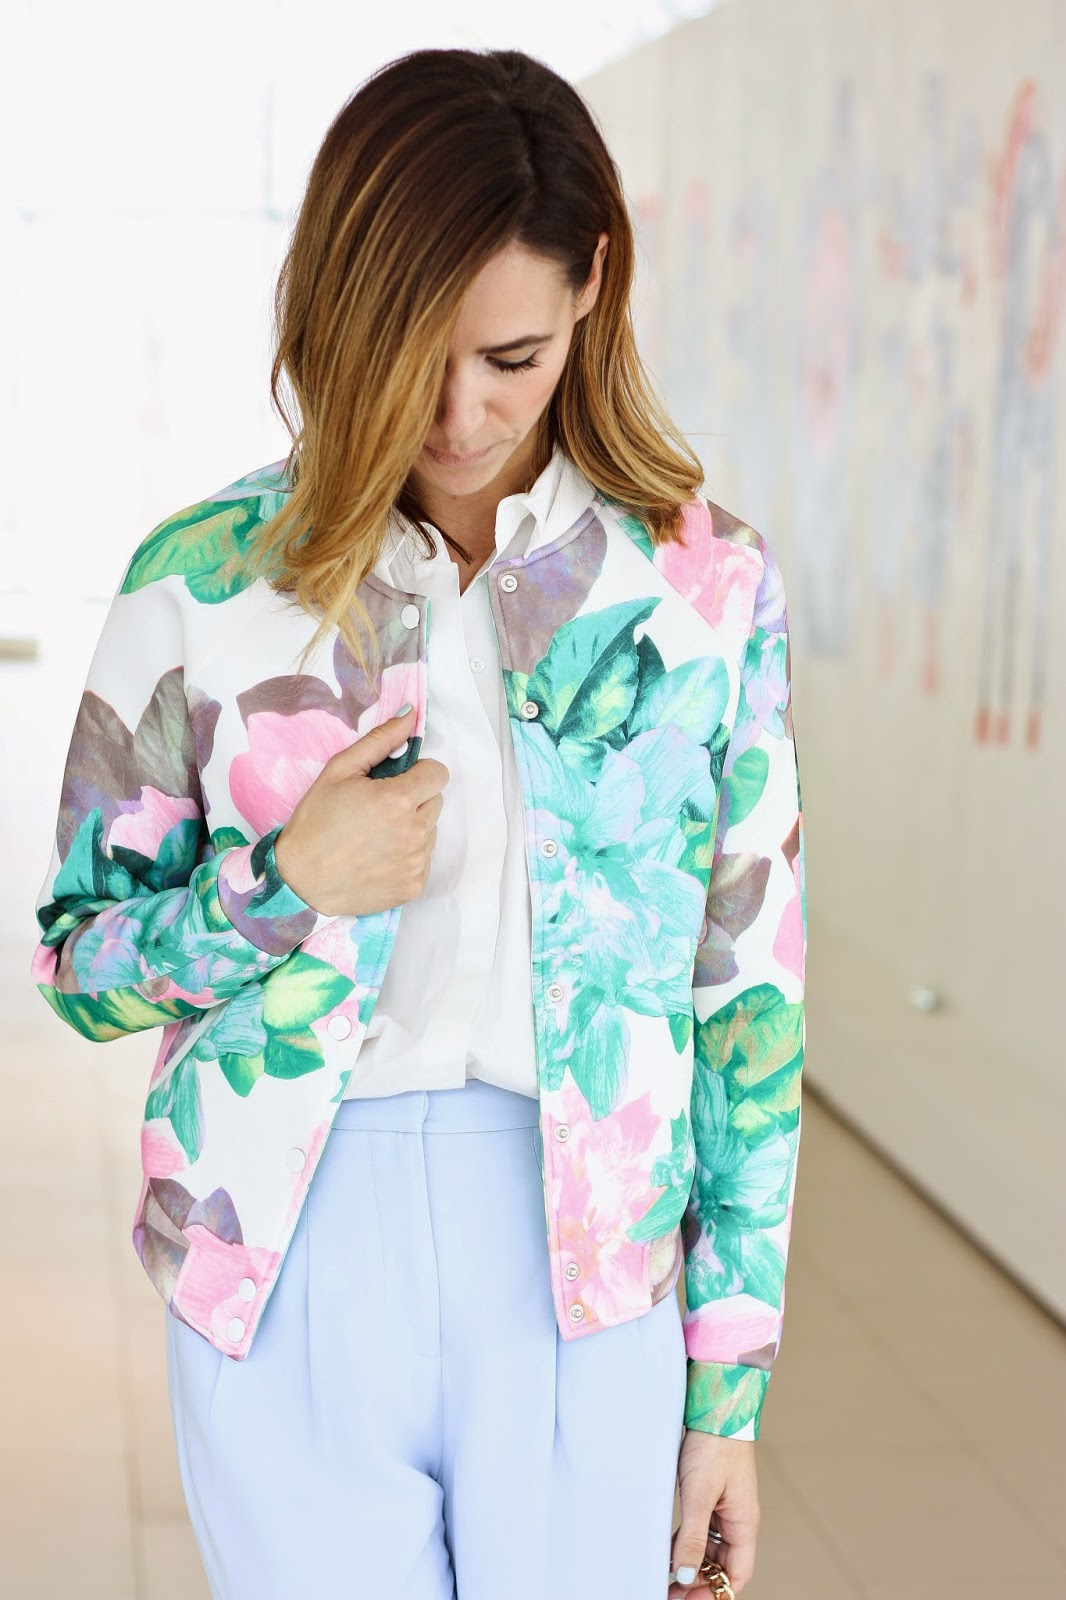 Forever 21 Scuba Knit Floral Bomber, Forever 21 Peep-toe faux leather mules, Forever 21 wide legged trousers, Forever 21, Forever 21 Rolled sleeved collared shirt, spring, pale blue